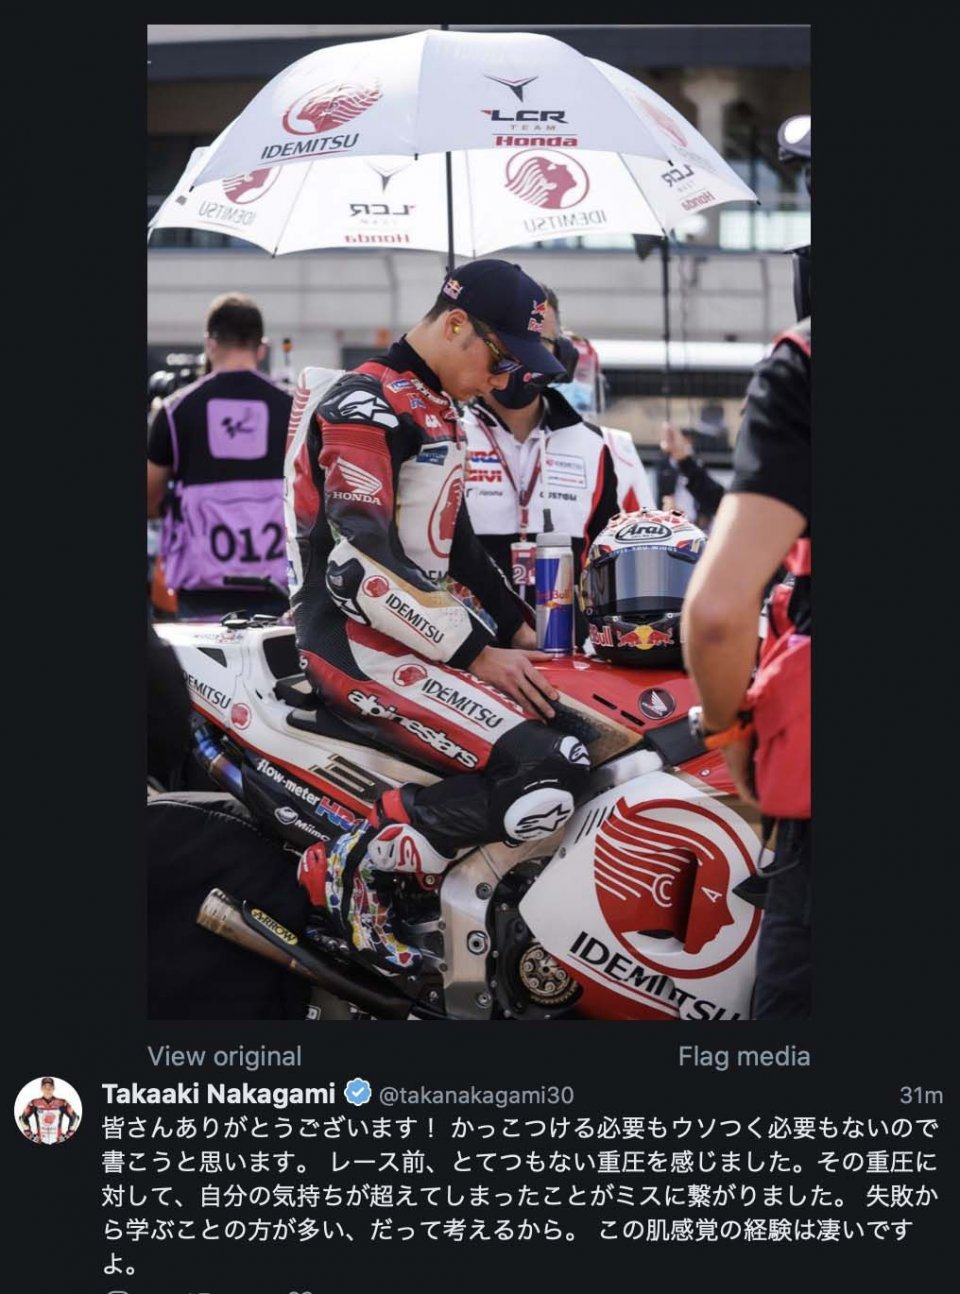 """MotoGP: Nakagami: """"tremendous pressure, I do not need to be cool or lie"""